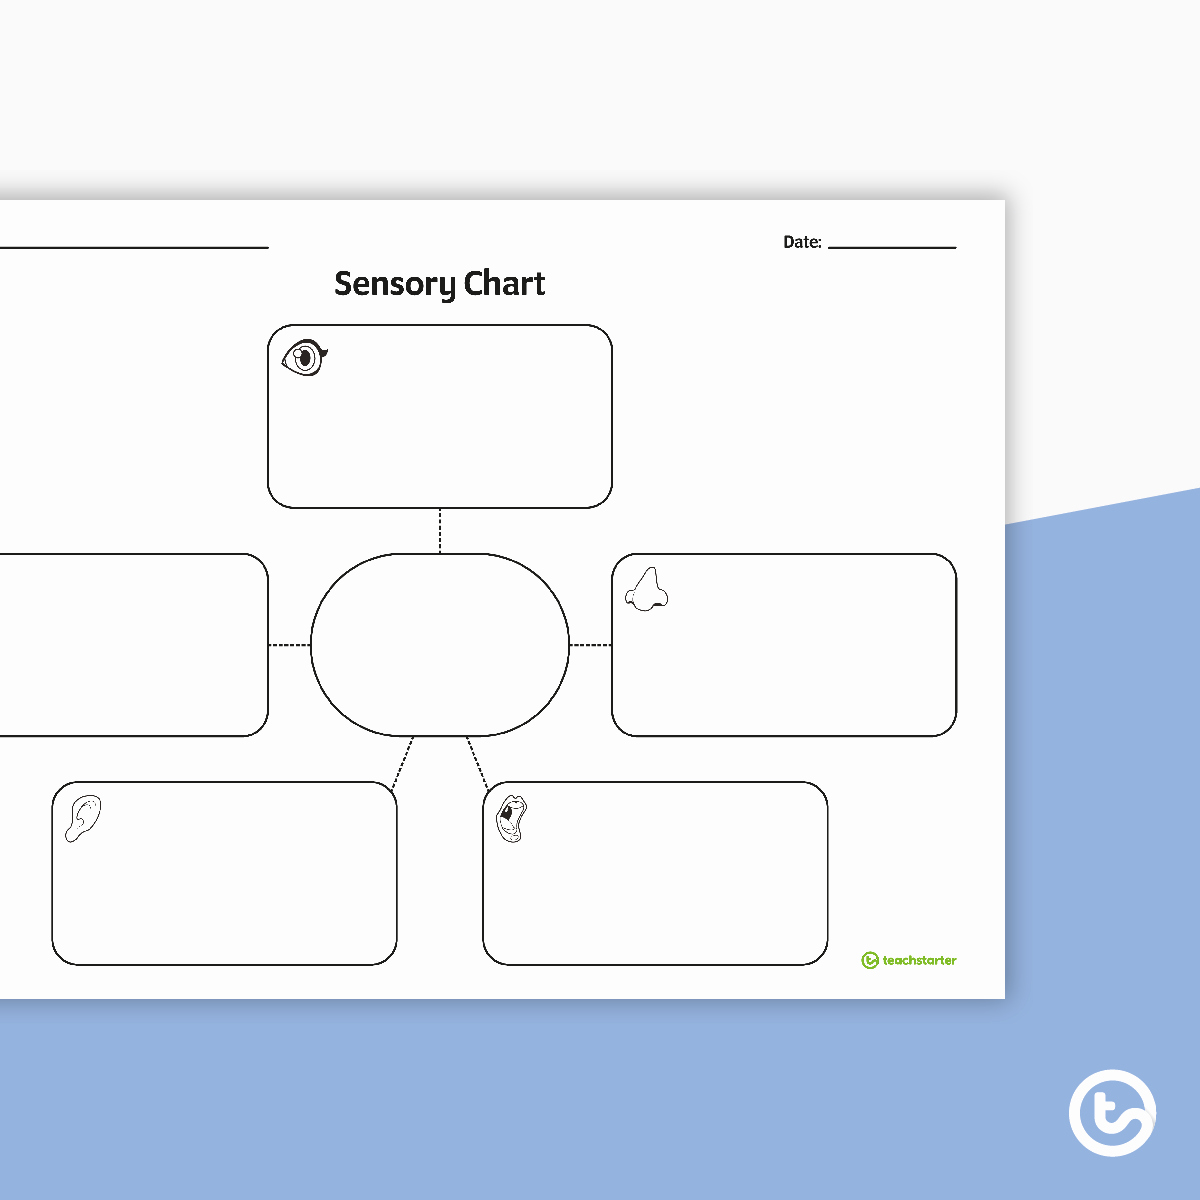 Sensory Detail Worksheet Unique Sensory Chart Graphic organiser Teaching Resource